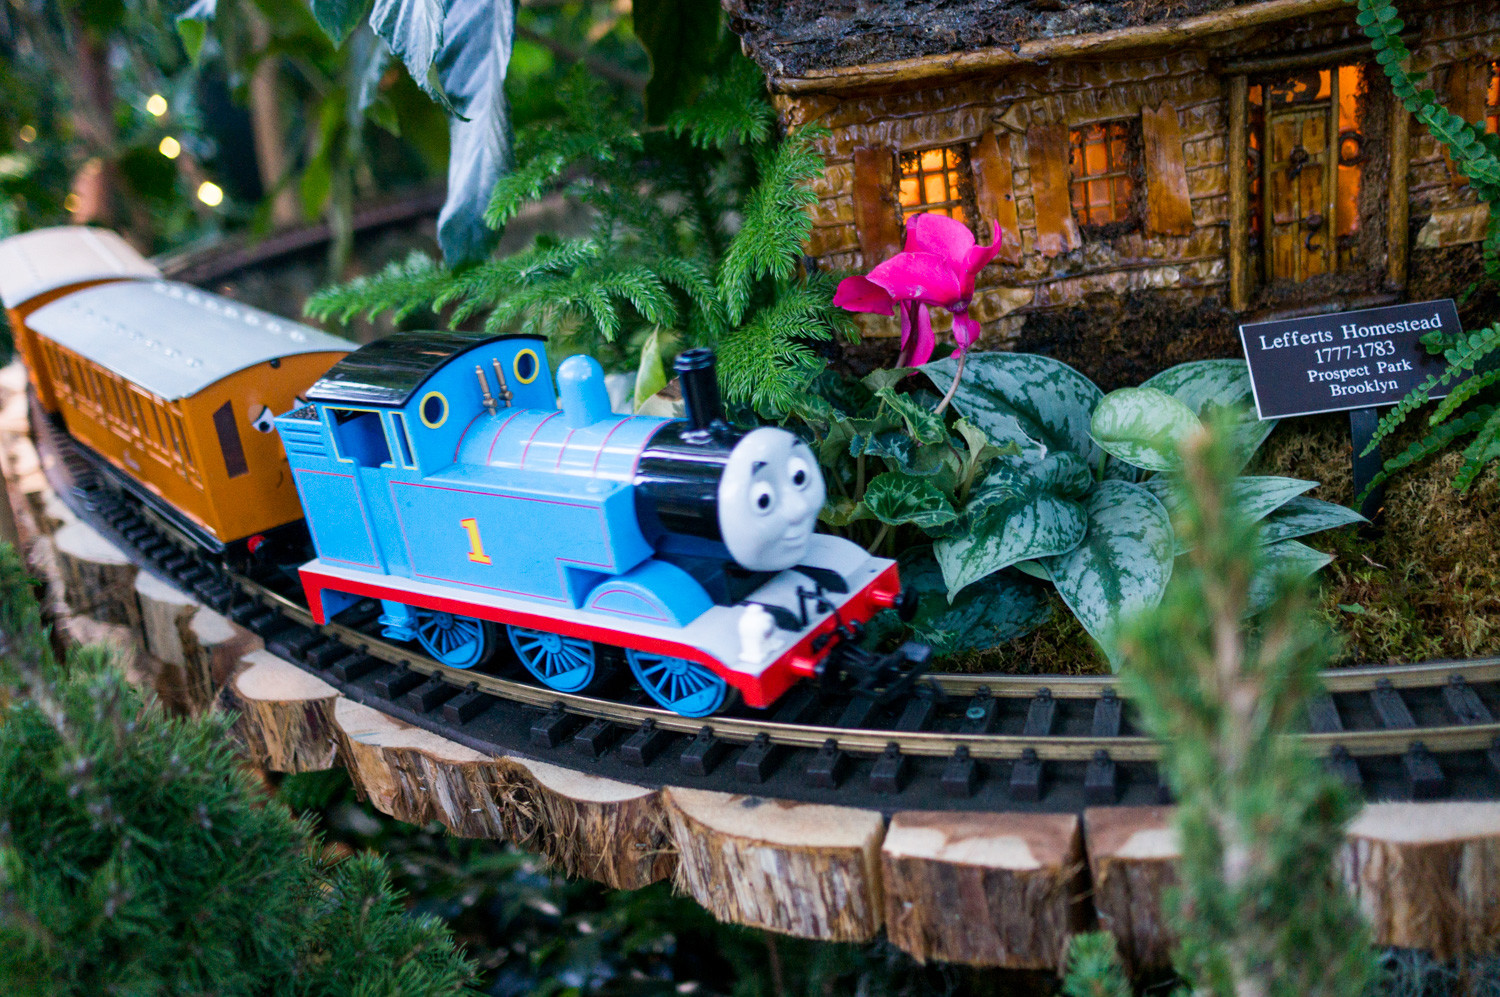 Thomas the Tank Engine rounds a corner near a replica of the Lefferts Homestead in the Holiday Train Show at the New York Botanical Garden.